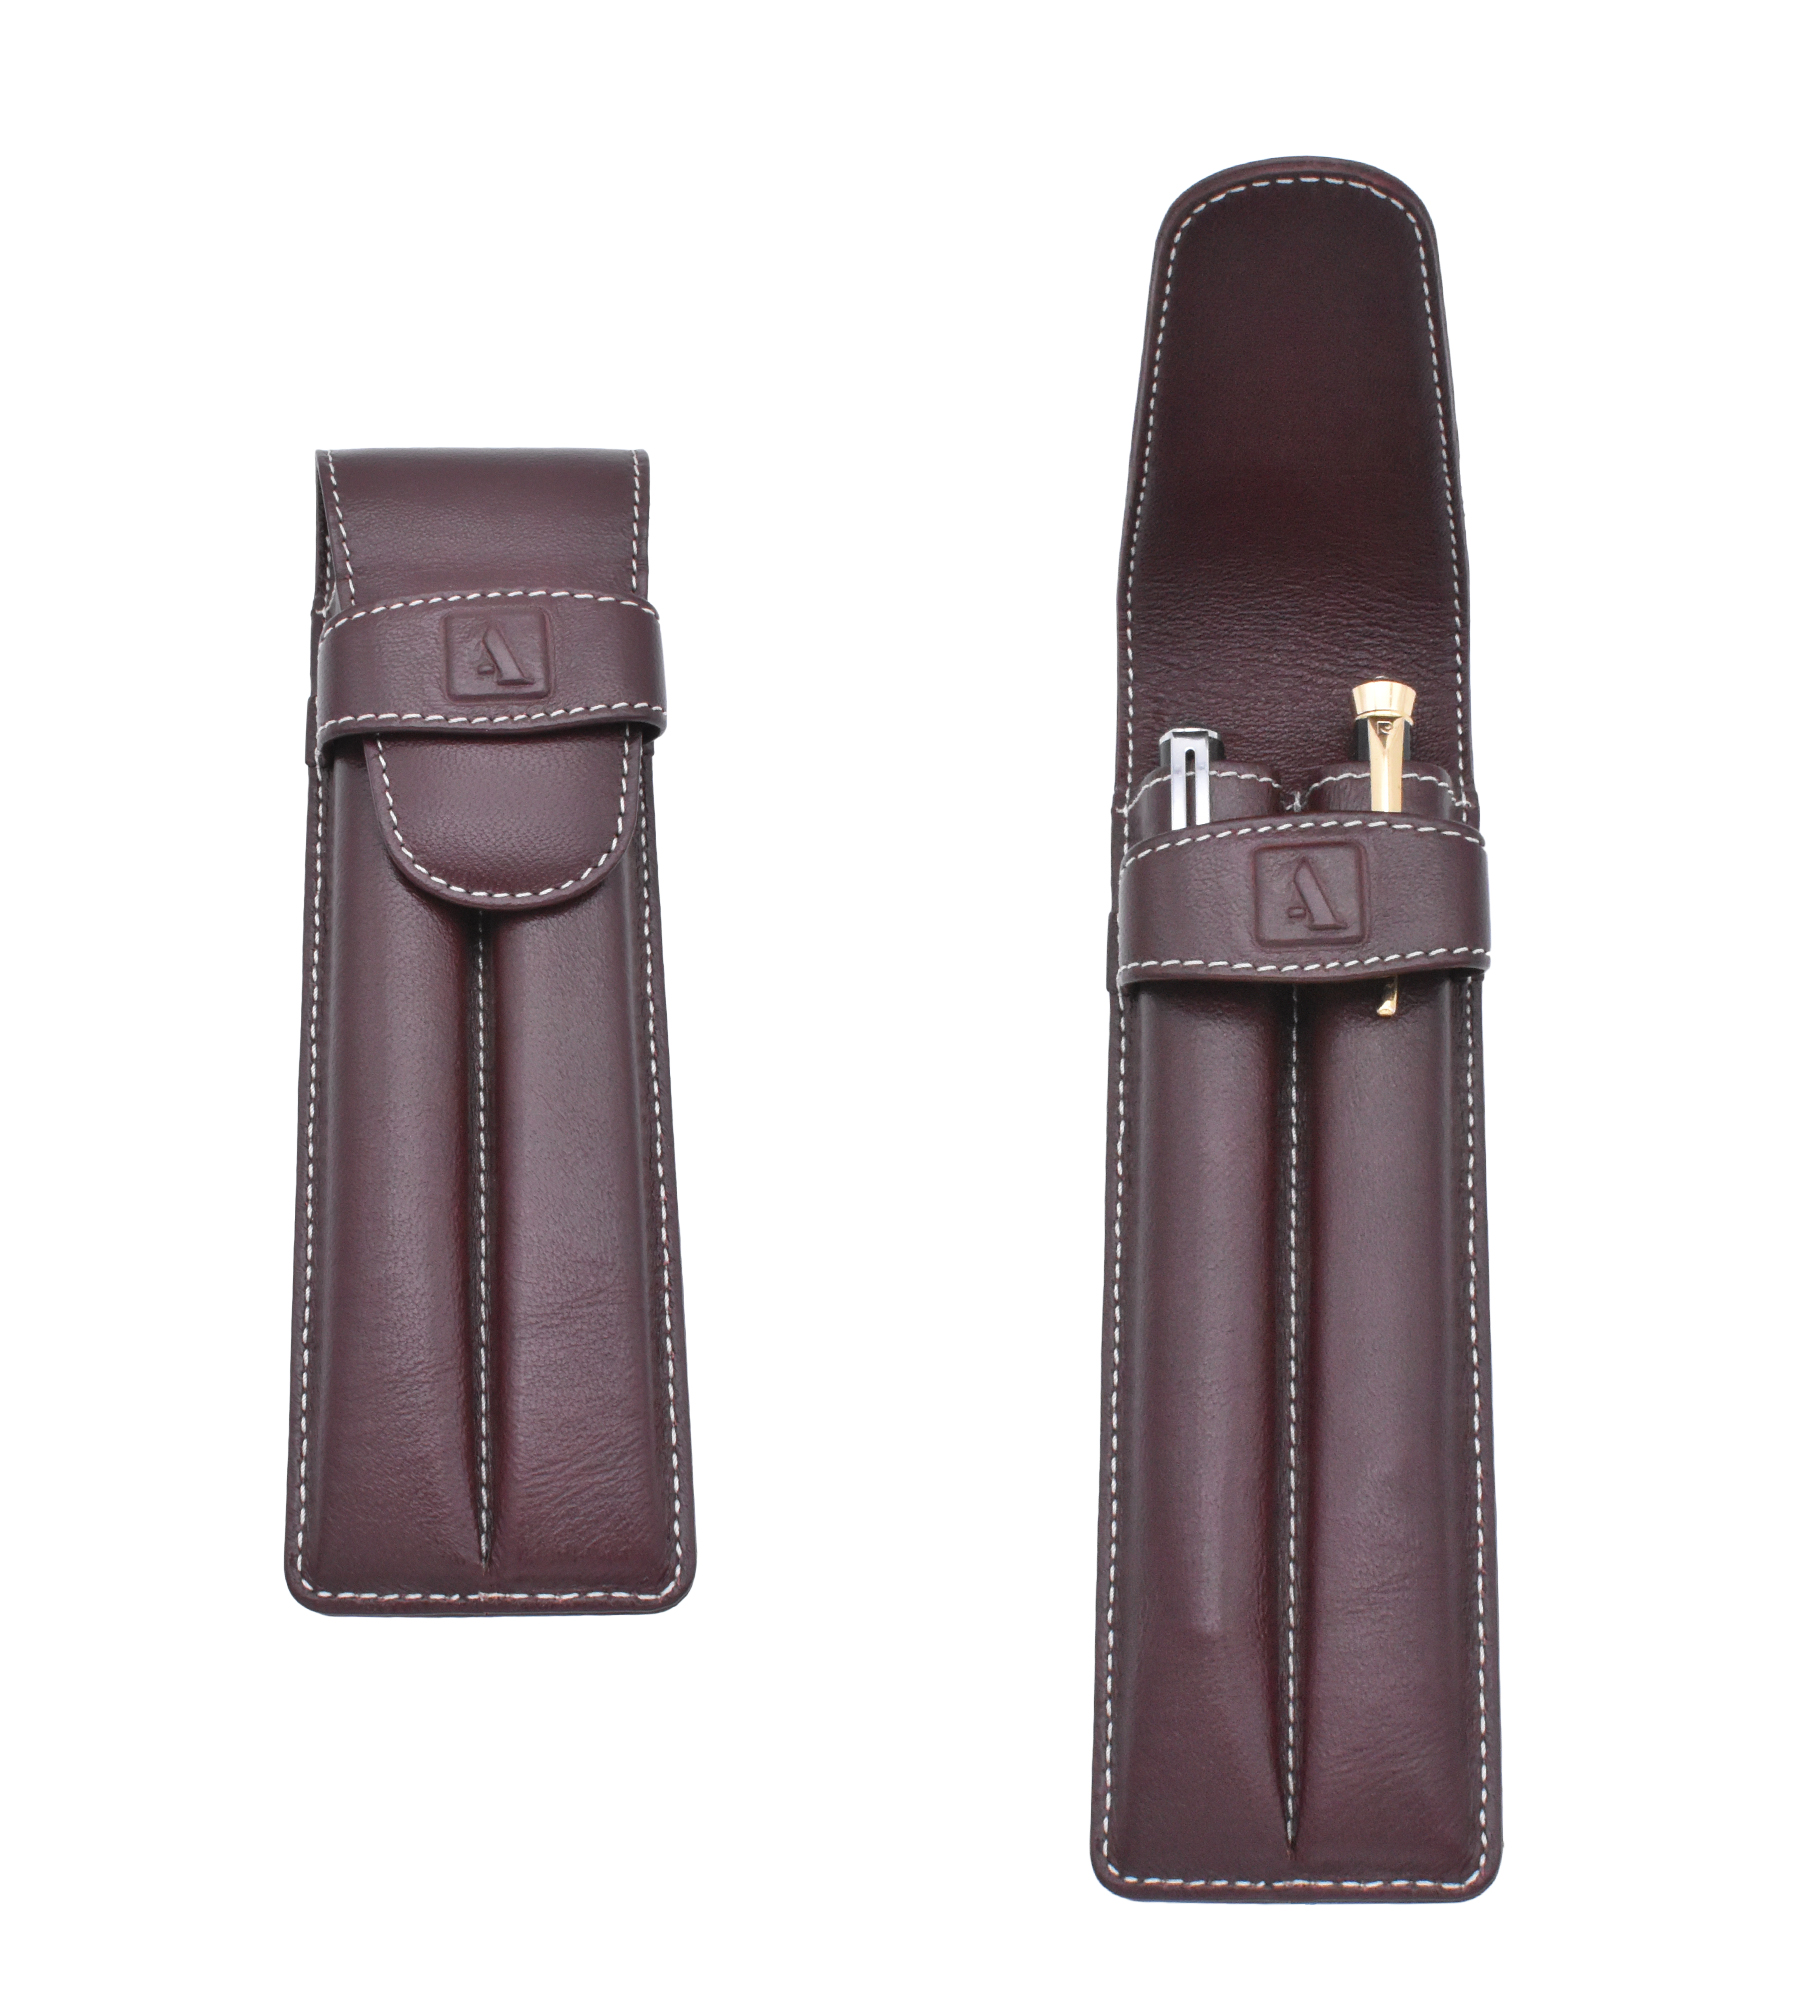 W51--Pen case to carry 2 pens in Genuine Leather - Wine